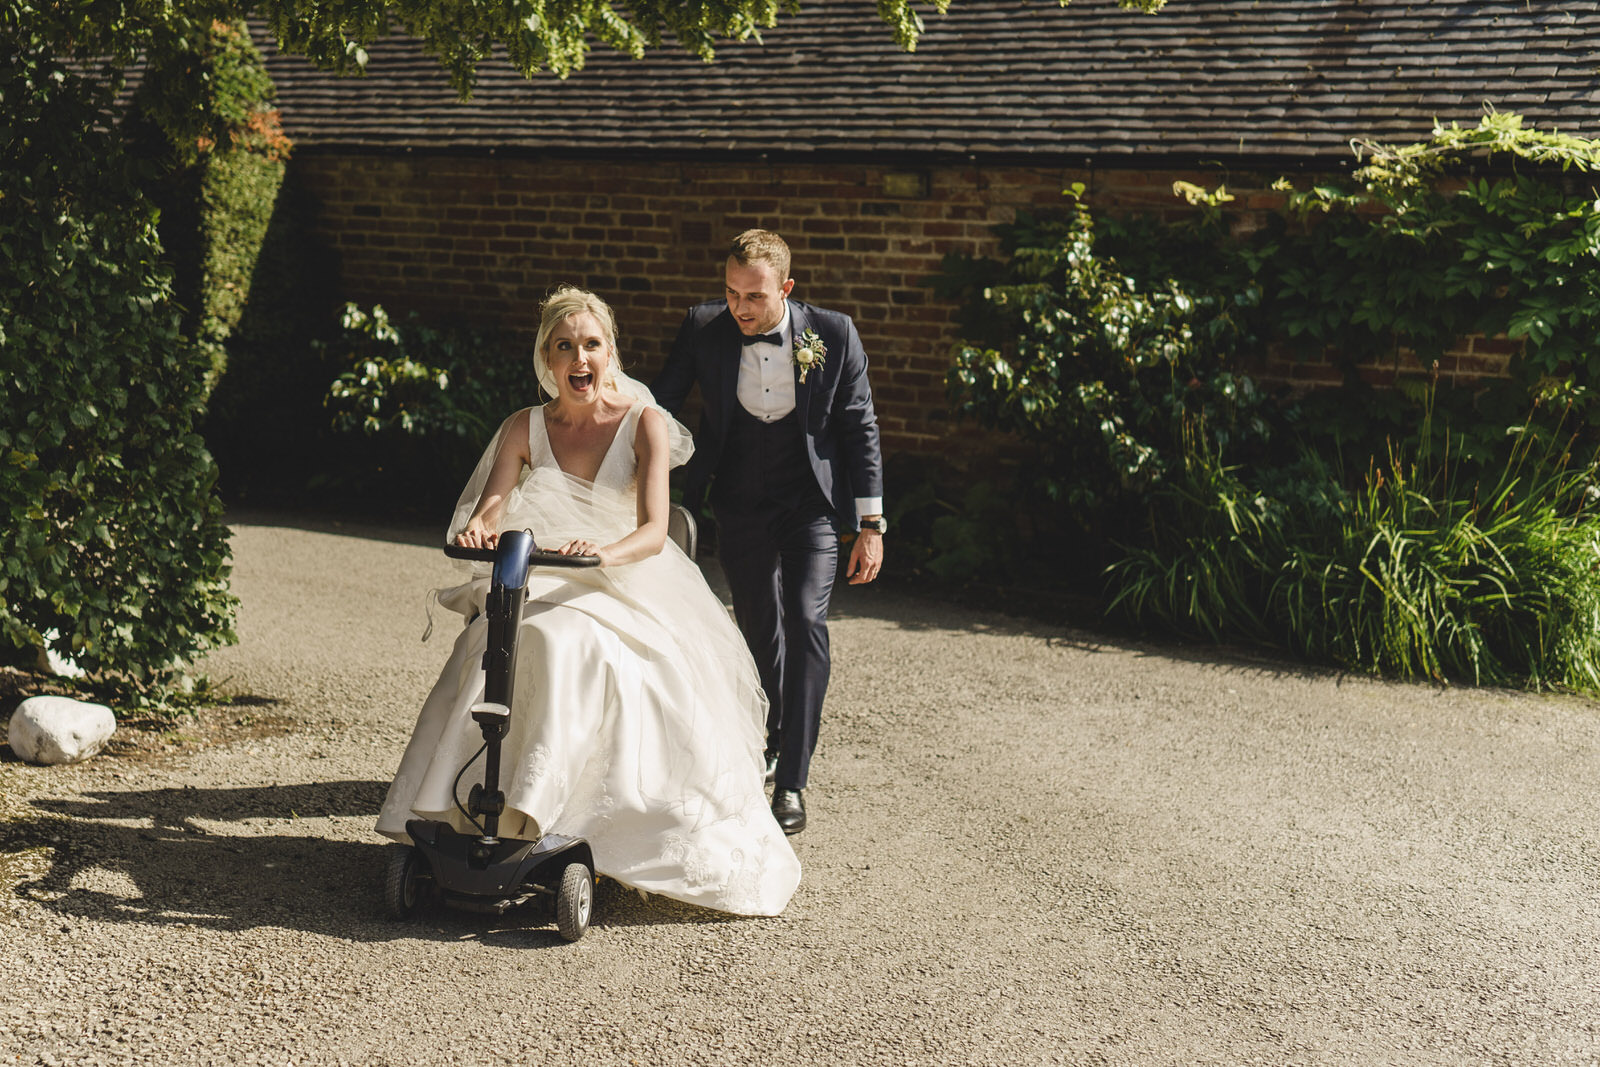 a mobility scooter makes for an interesting mode of transport for the bride as the groom looks on